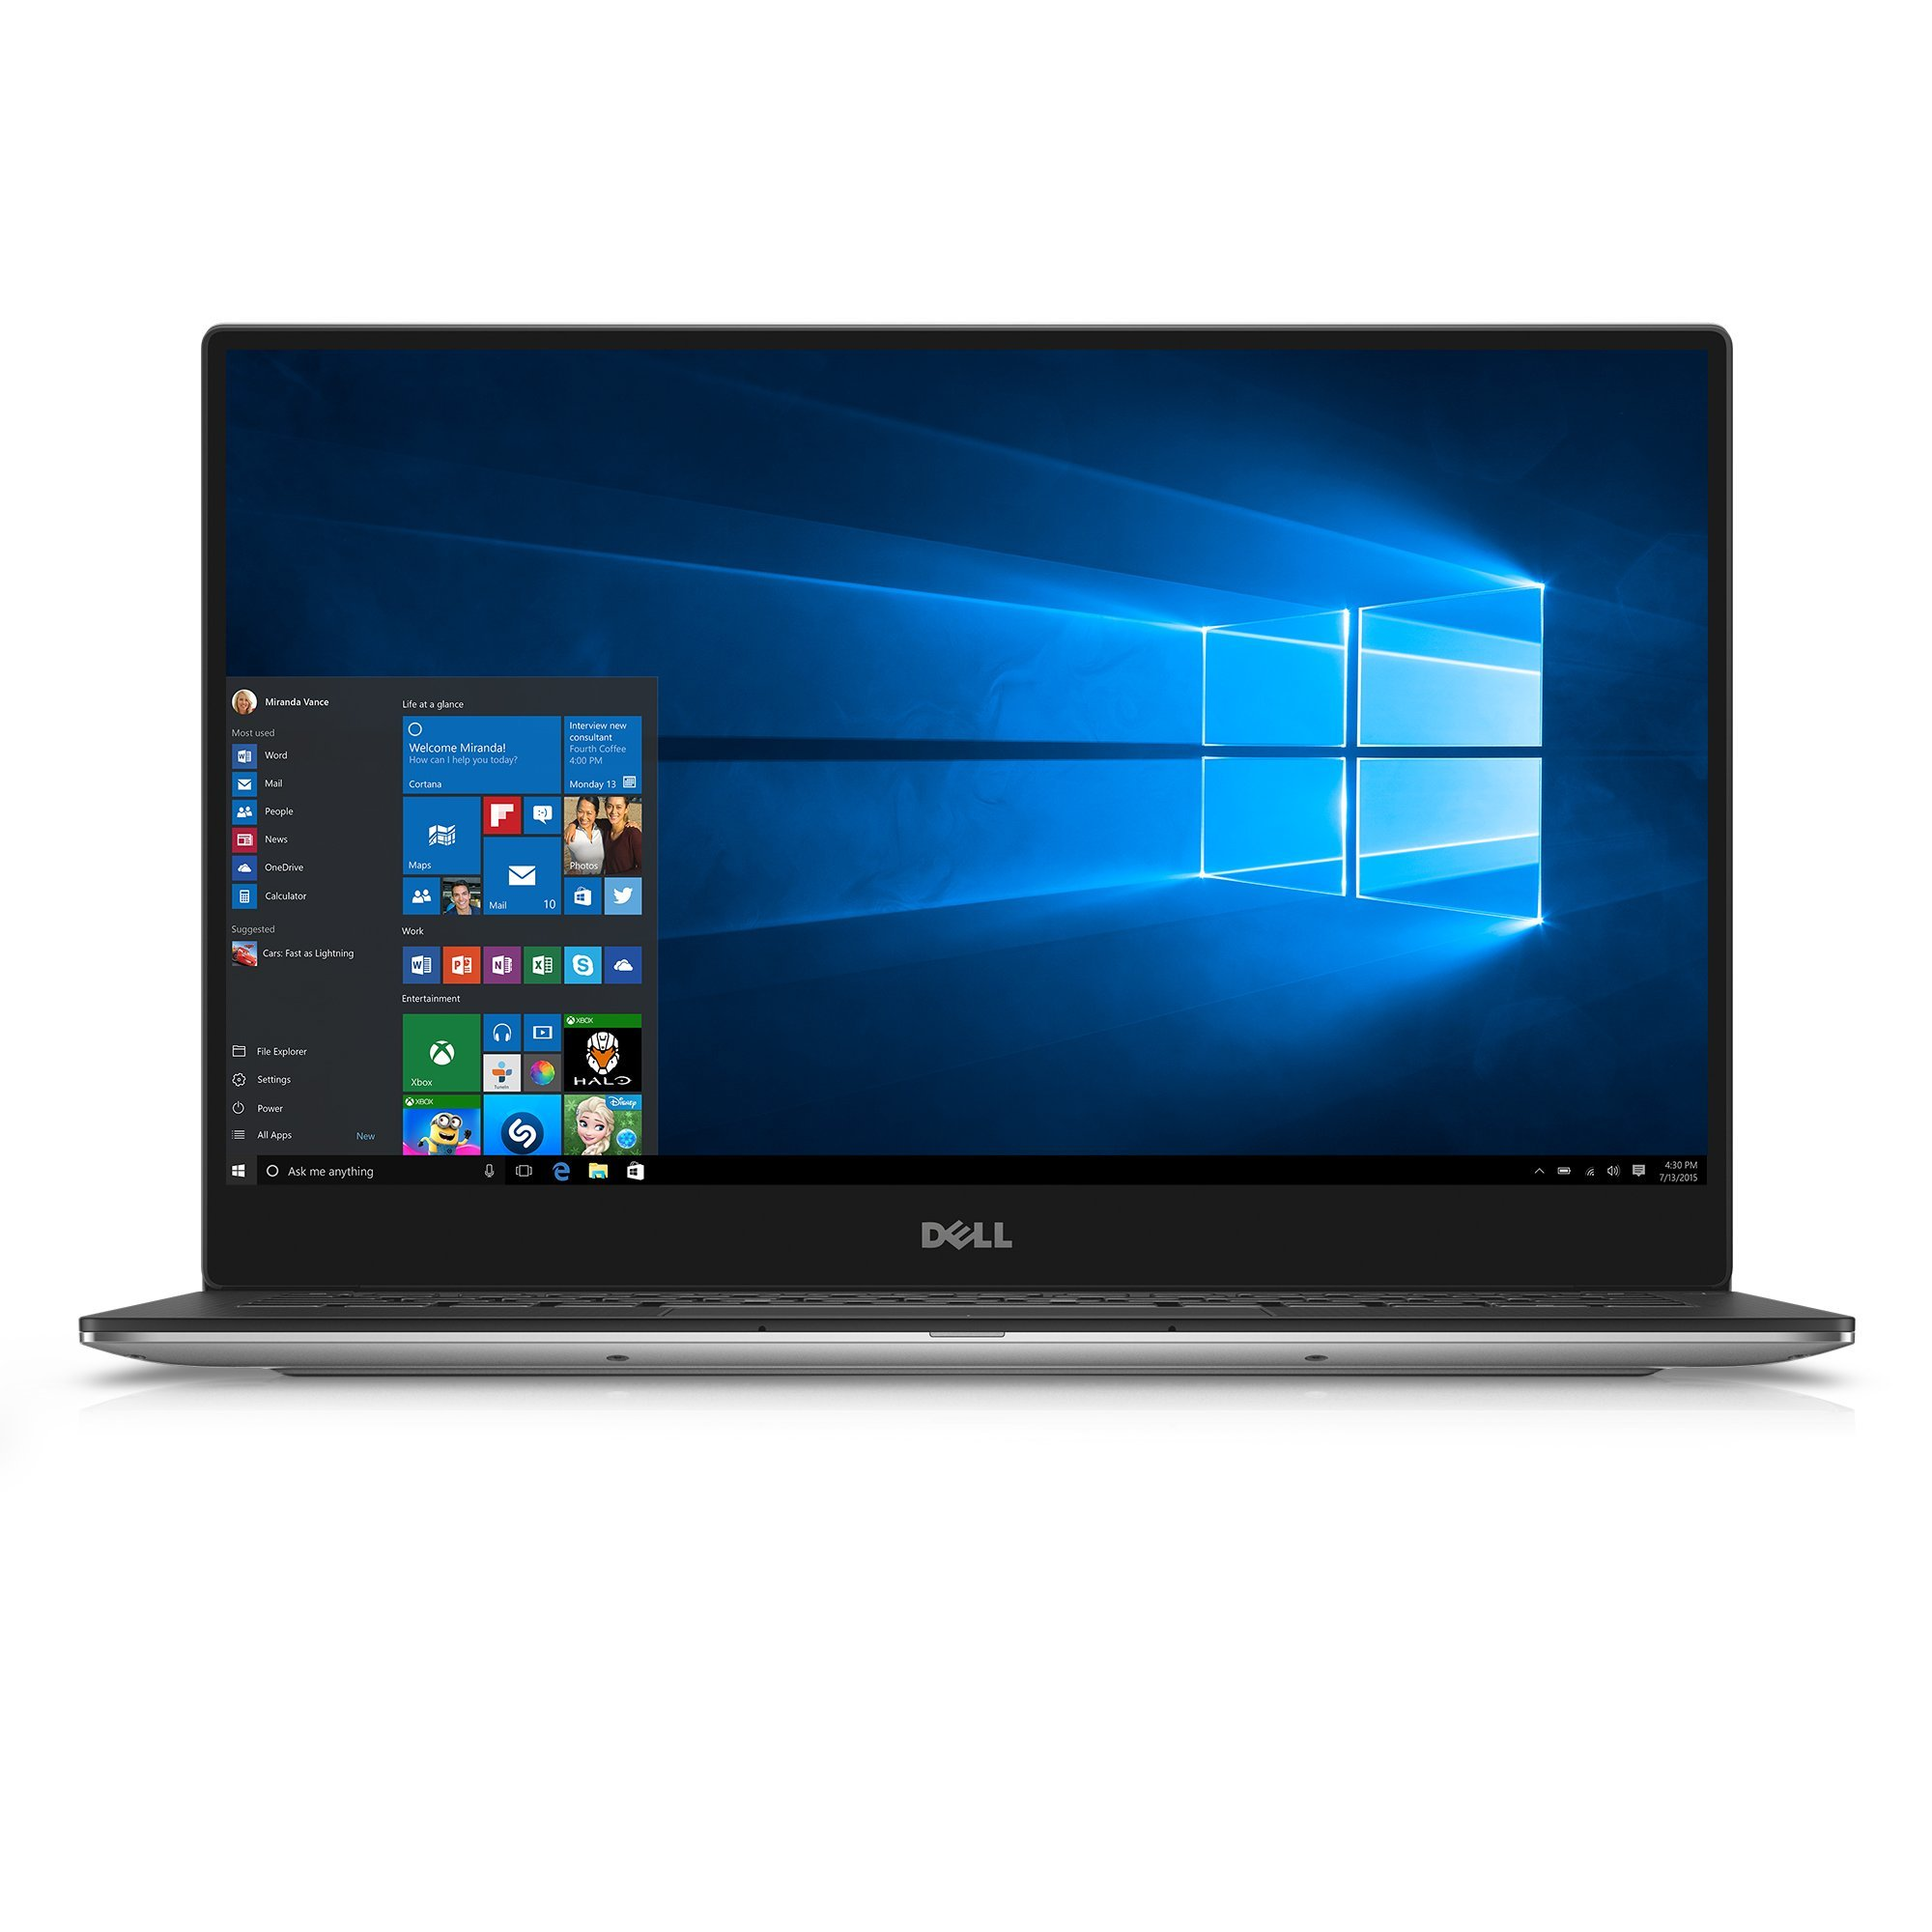 Dell XPS9350-10673SLV 13.3'' 3200x1800 Laptop (Intel Core i7-6560U 2.2GHz Processor, 16 GB RAM, 1 TB SDD, Windows 10 Microsoft Signature Image) Silver by Dell